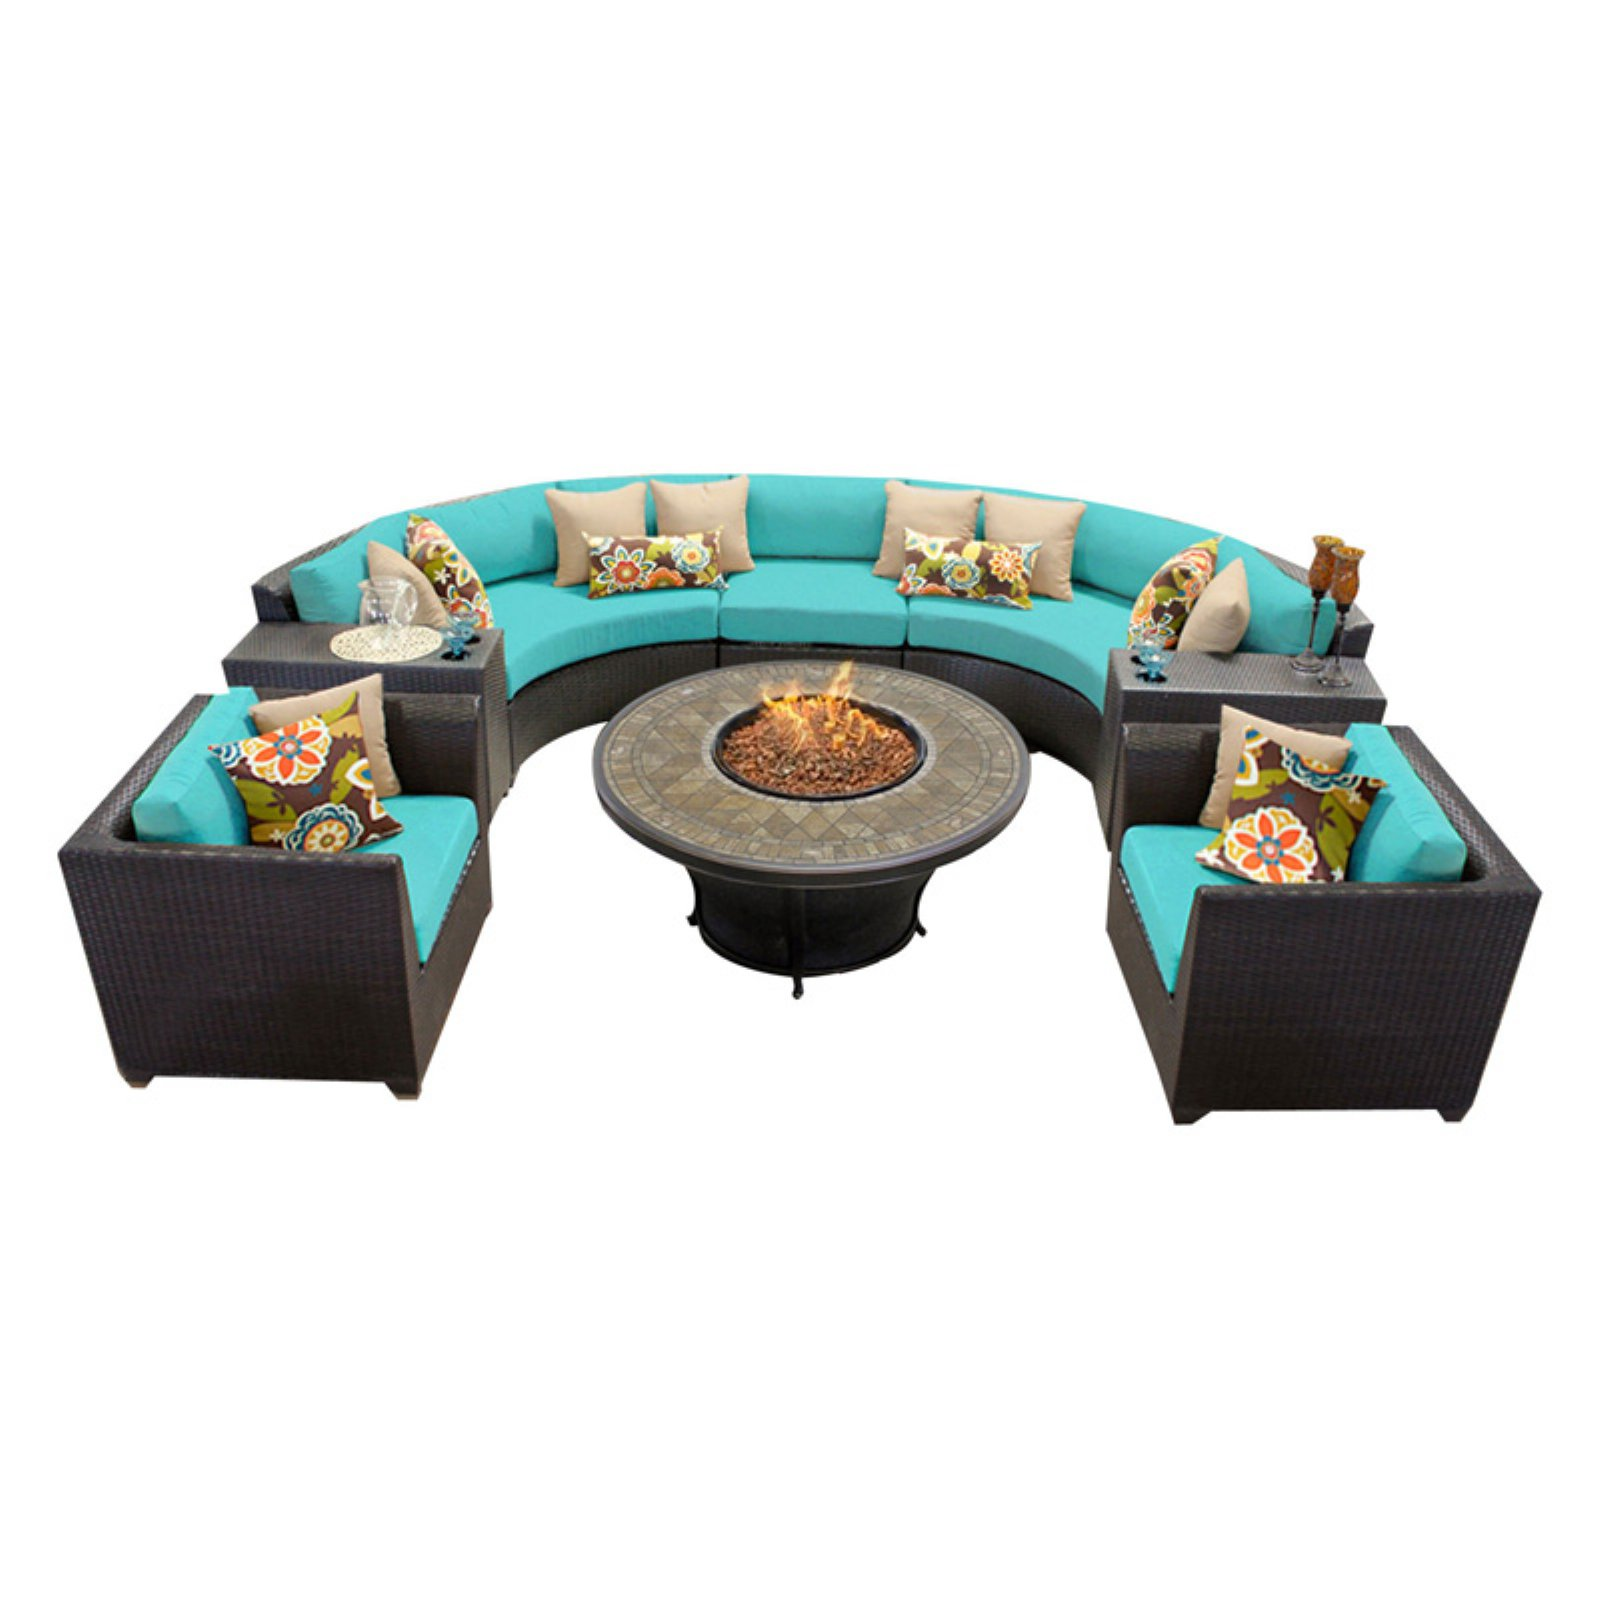 TK Classics Barbados Wicker 8 Piece Patio Conversation Set with Firepit Table and 2 Sets of Cushion Covers by TK Classics